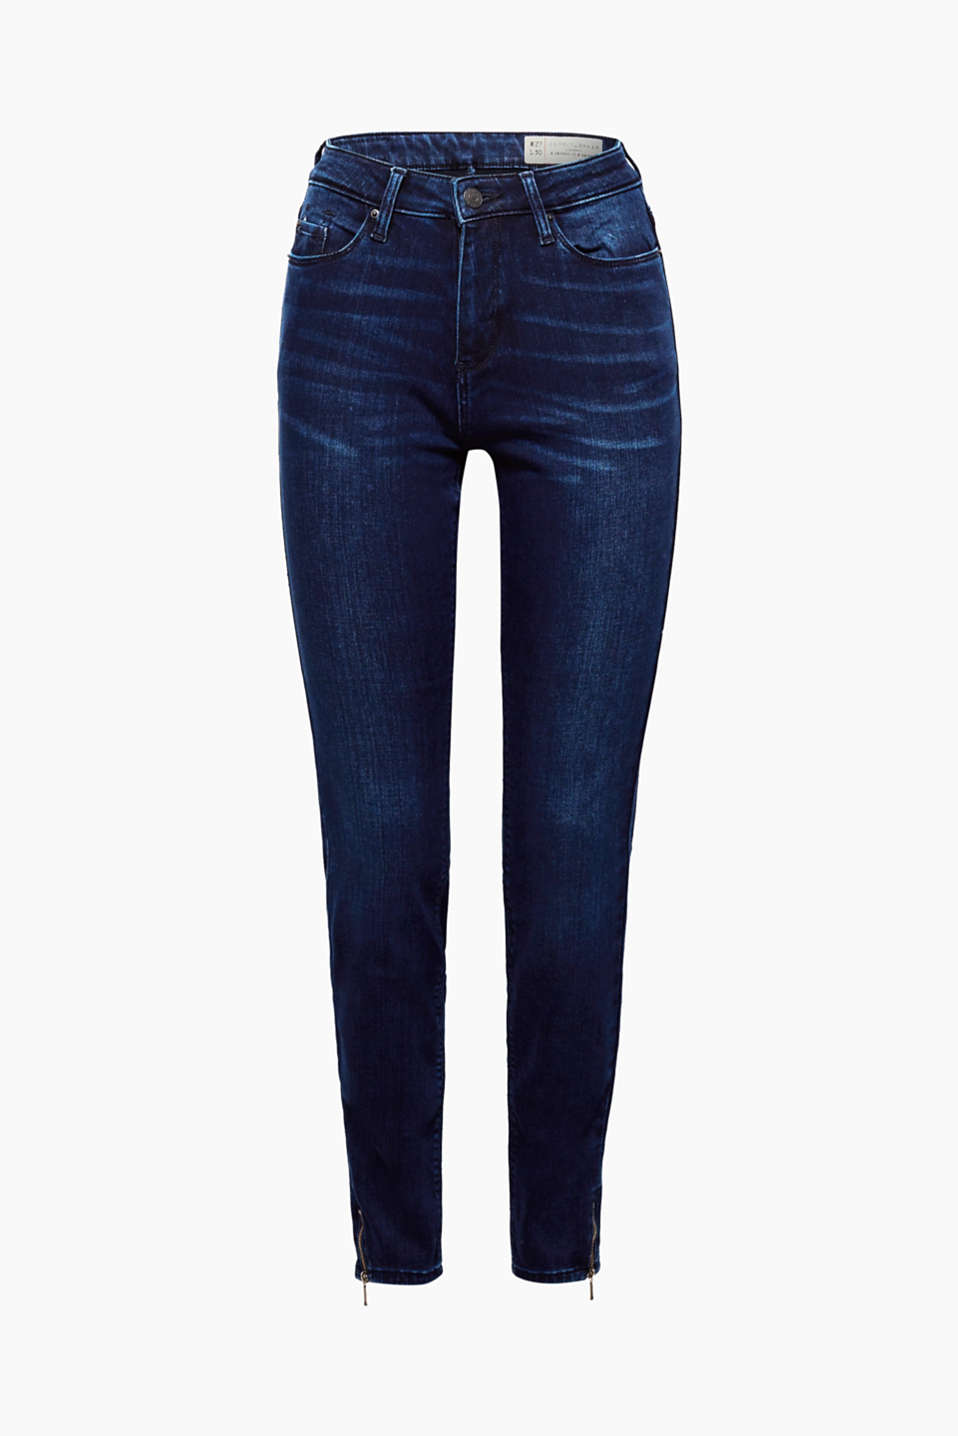 The stretchy fabric makes the skin-tight fit feel mega comfy: skinny jeans with hem zips!